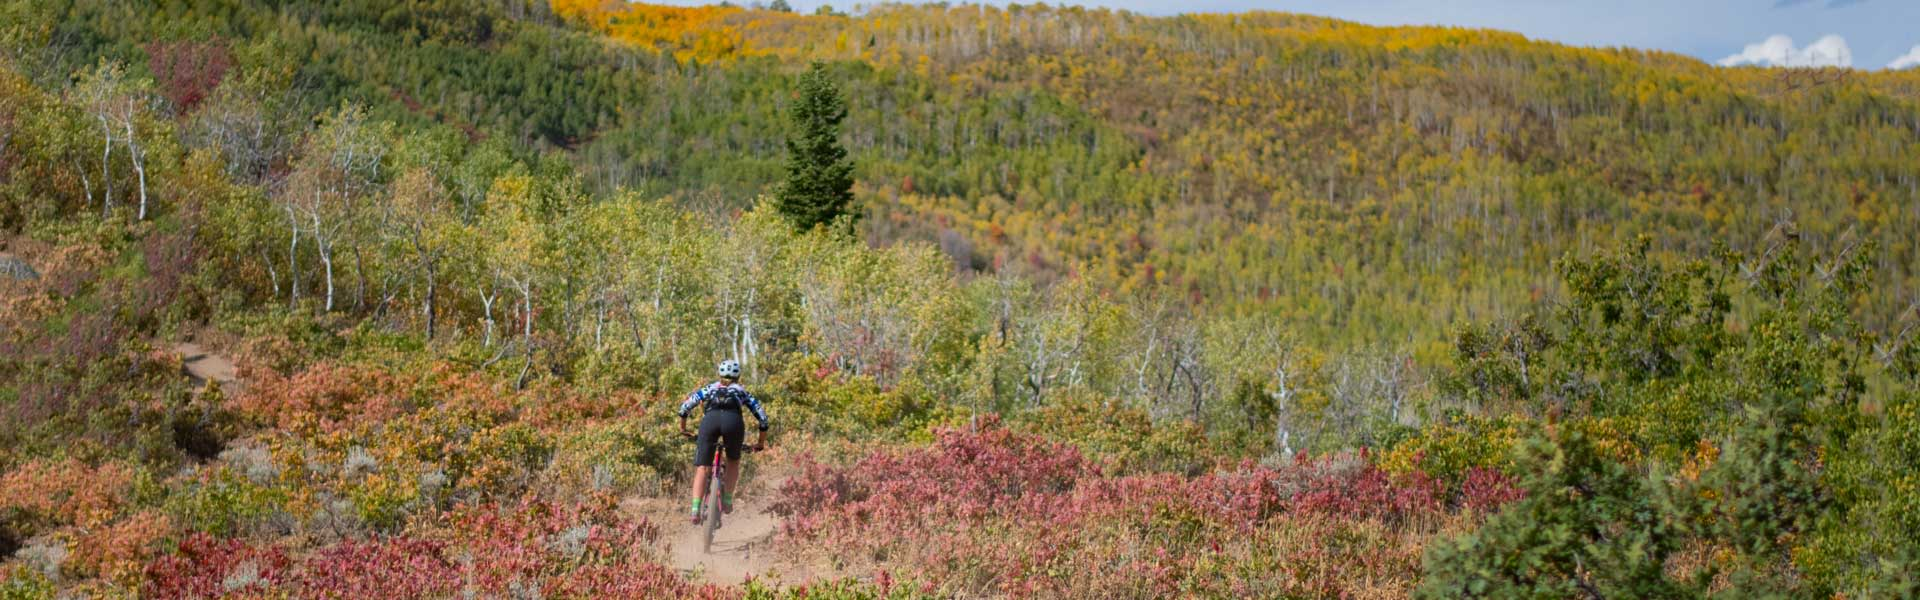 3 Tips for Surviving Your Next Suffer-fest on the Bike | Liv